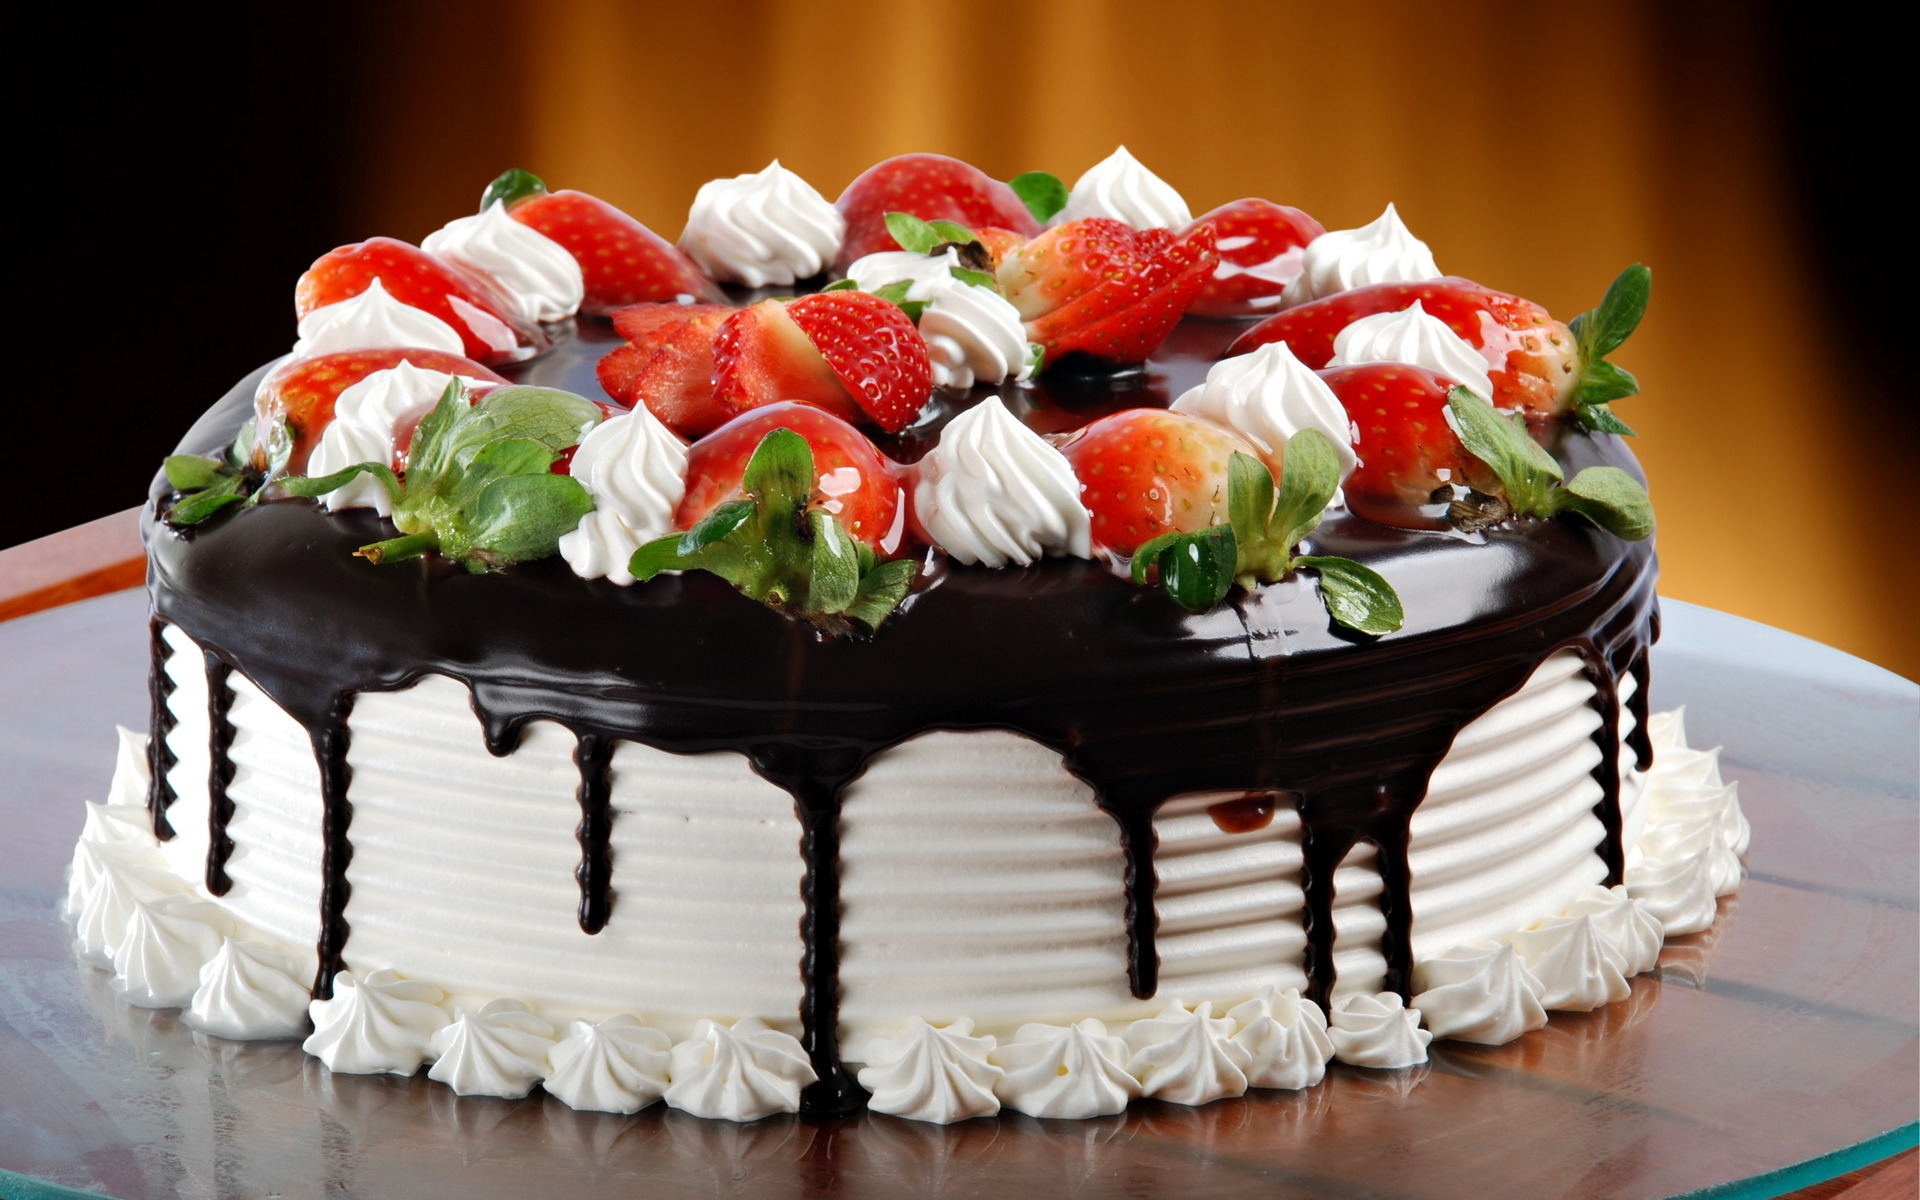 Birthday Cakes Wallpapers Free Download Birthday Images 1 HD Wallpapers